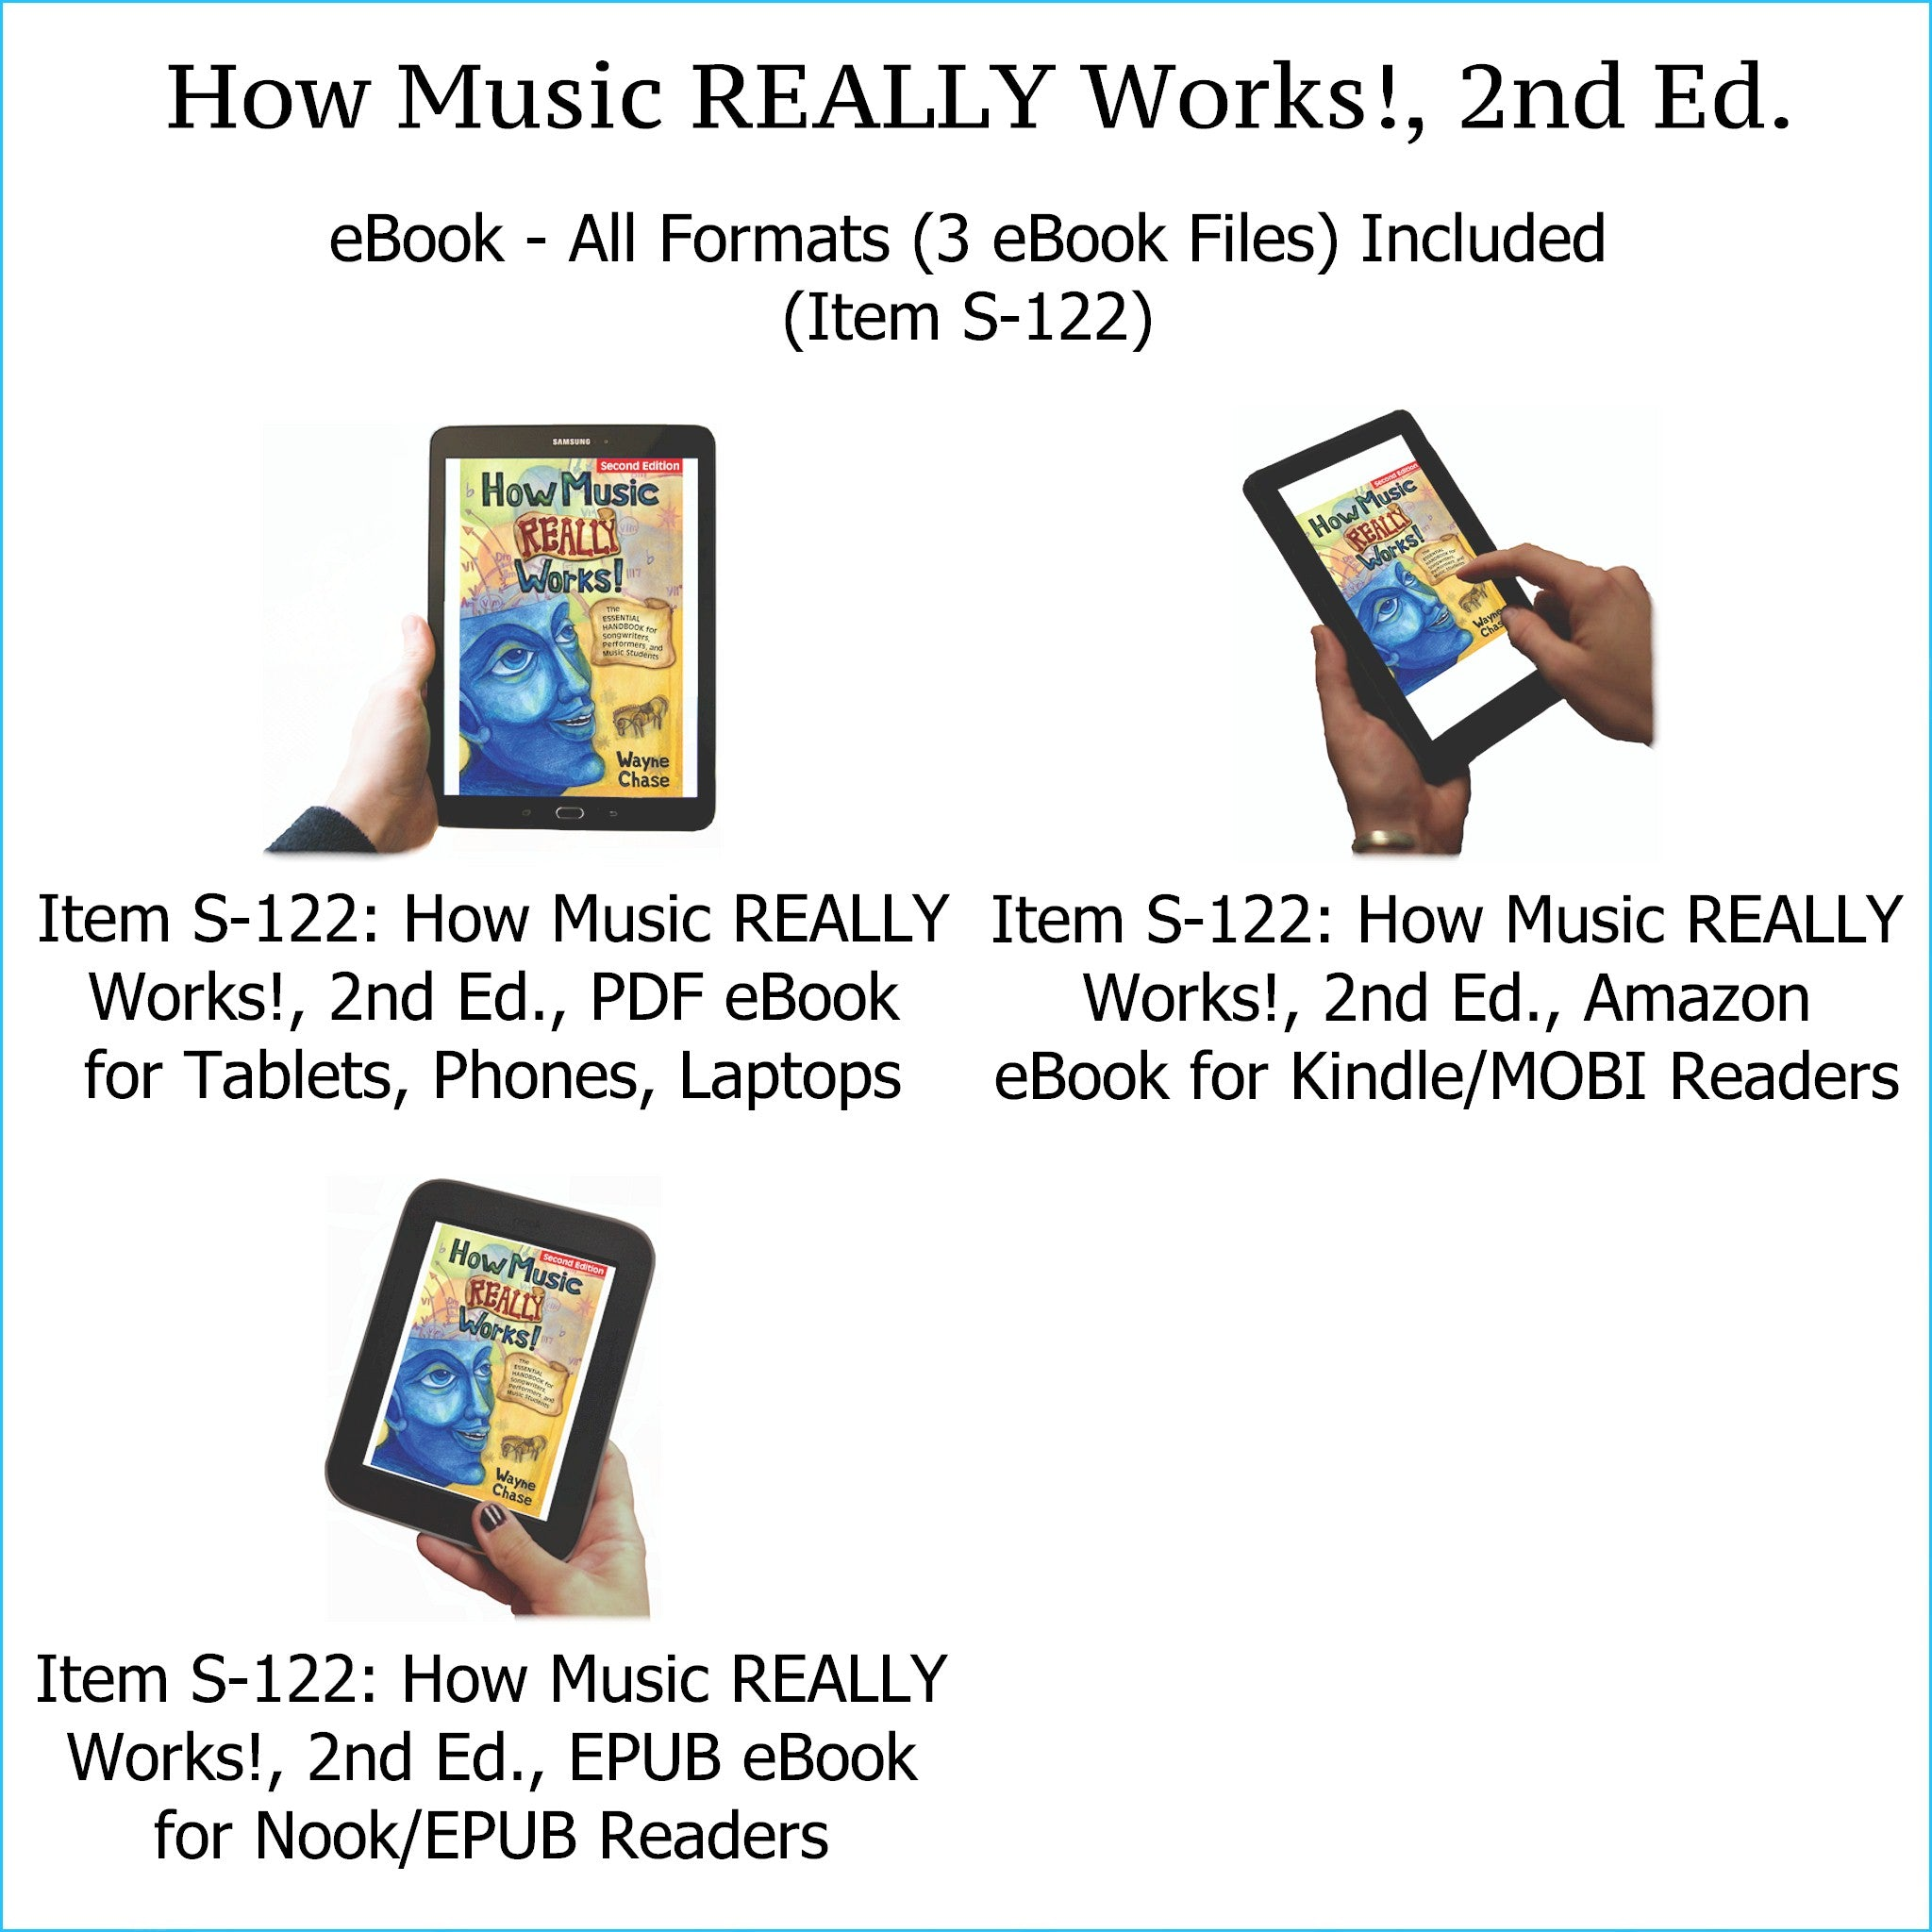 Item S-122: How Music REALLY Works!, 2nd Edition eBook, All Formats Included (PDF, mobi/Kindle, epub/Nook). Comes with BONUS Chord Progression Chart, PDF Edition and Musical Instruments Poster, PDF Edition.